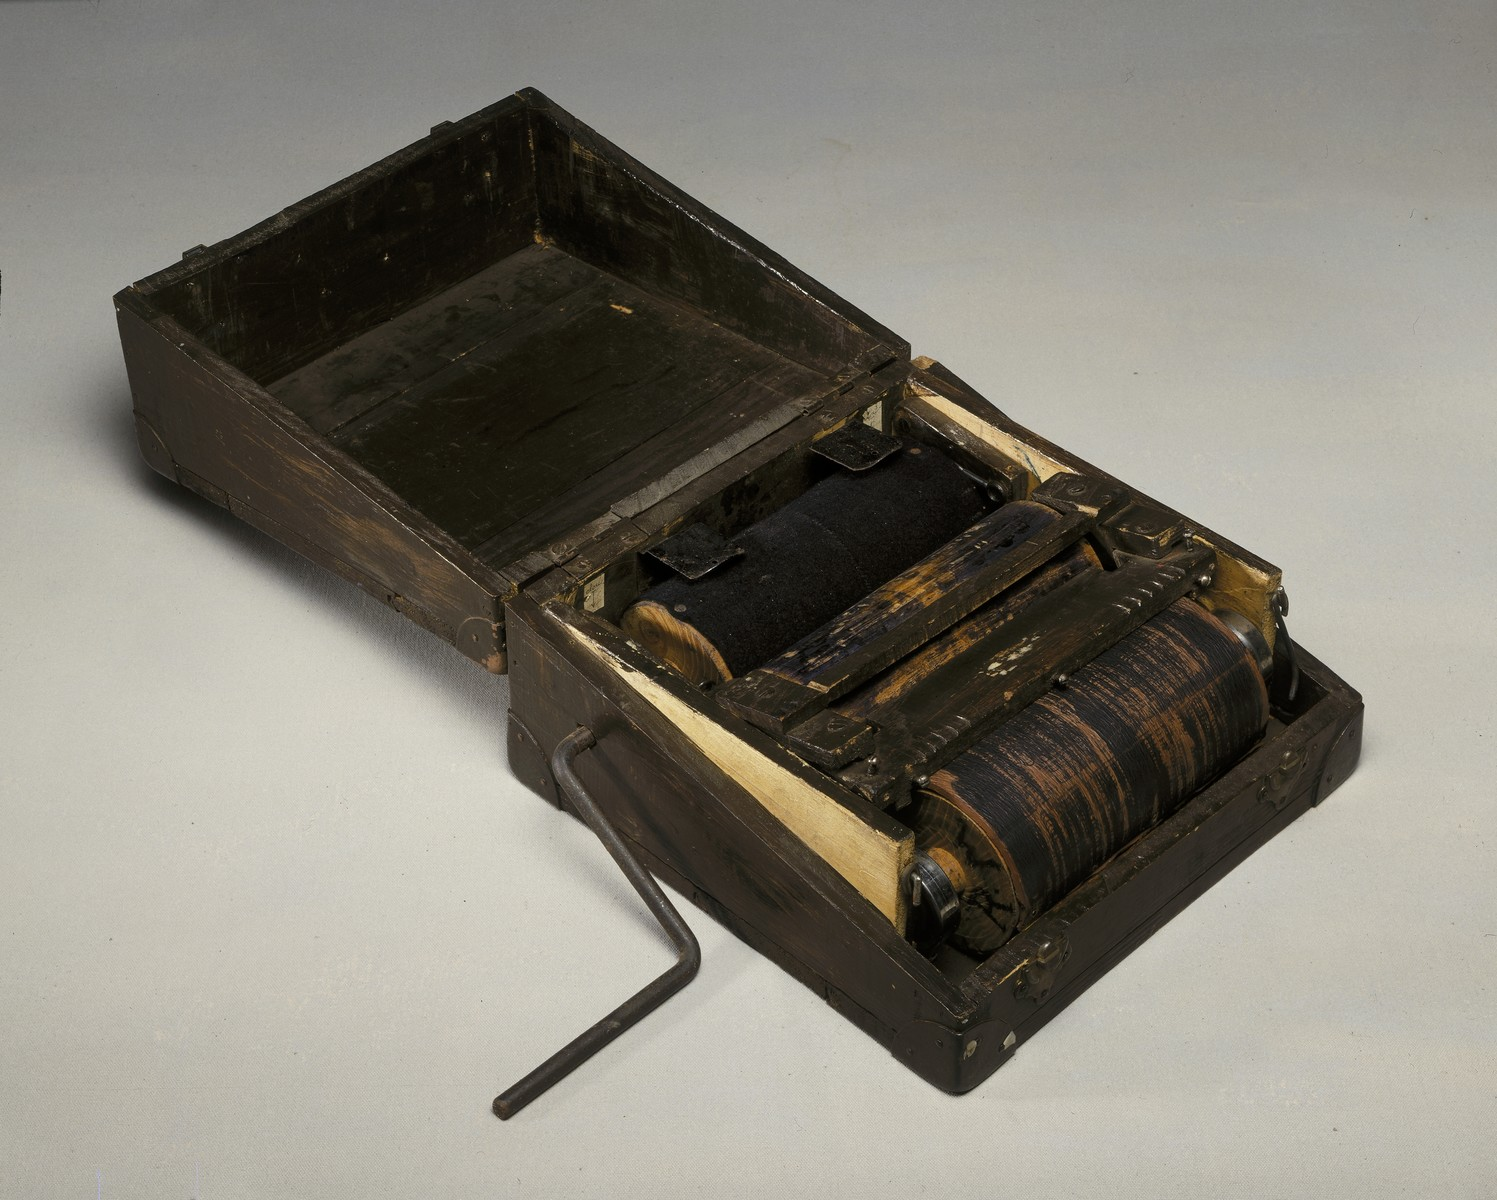 Portable printing machine in a wooden case made for, and used by, the French resistance during WWII.  Members of the French resistance used the machine to print false documents.